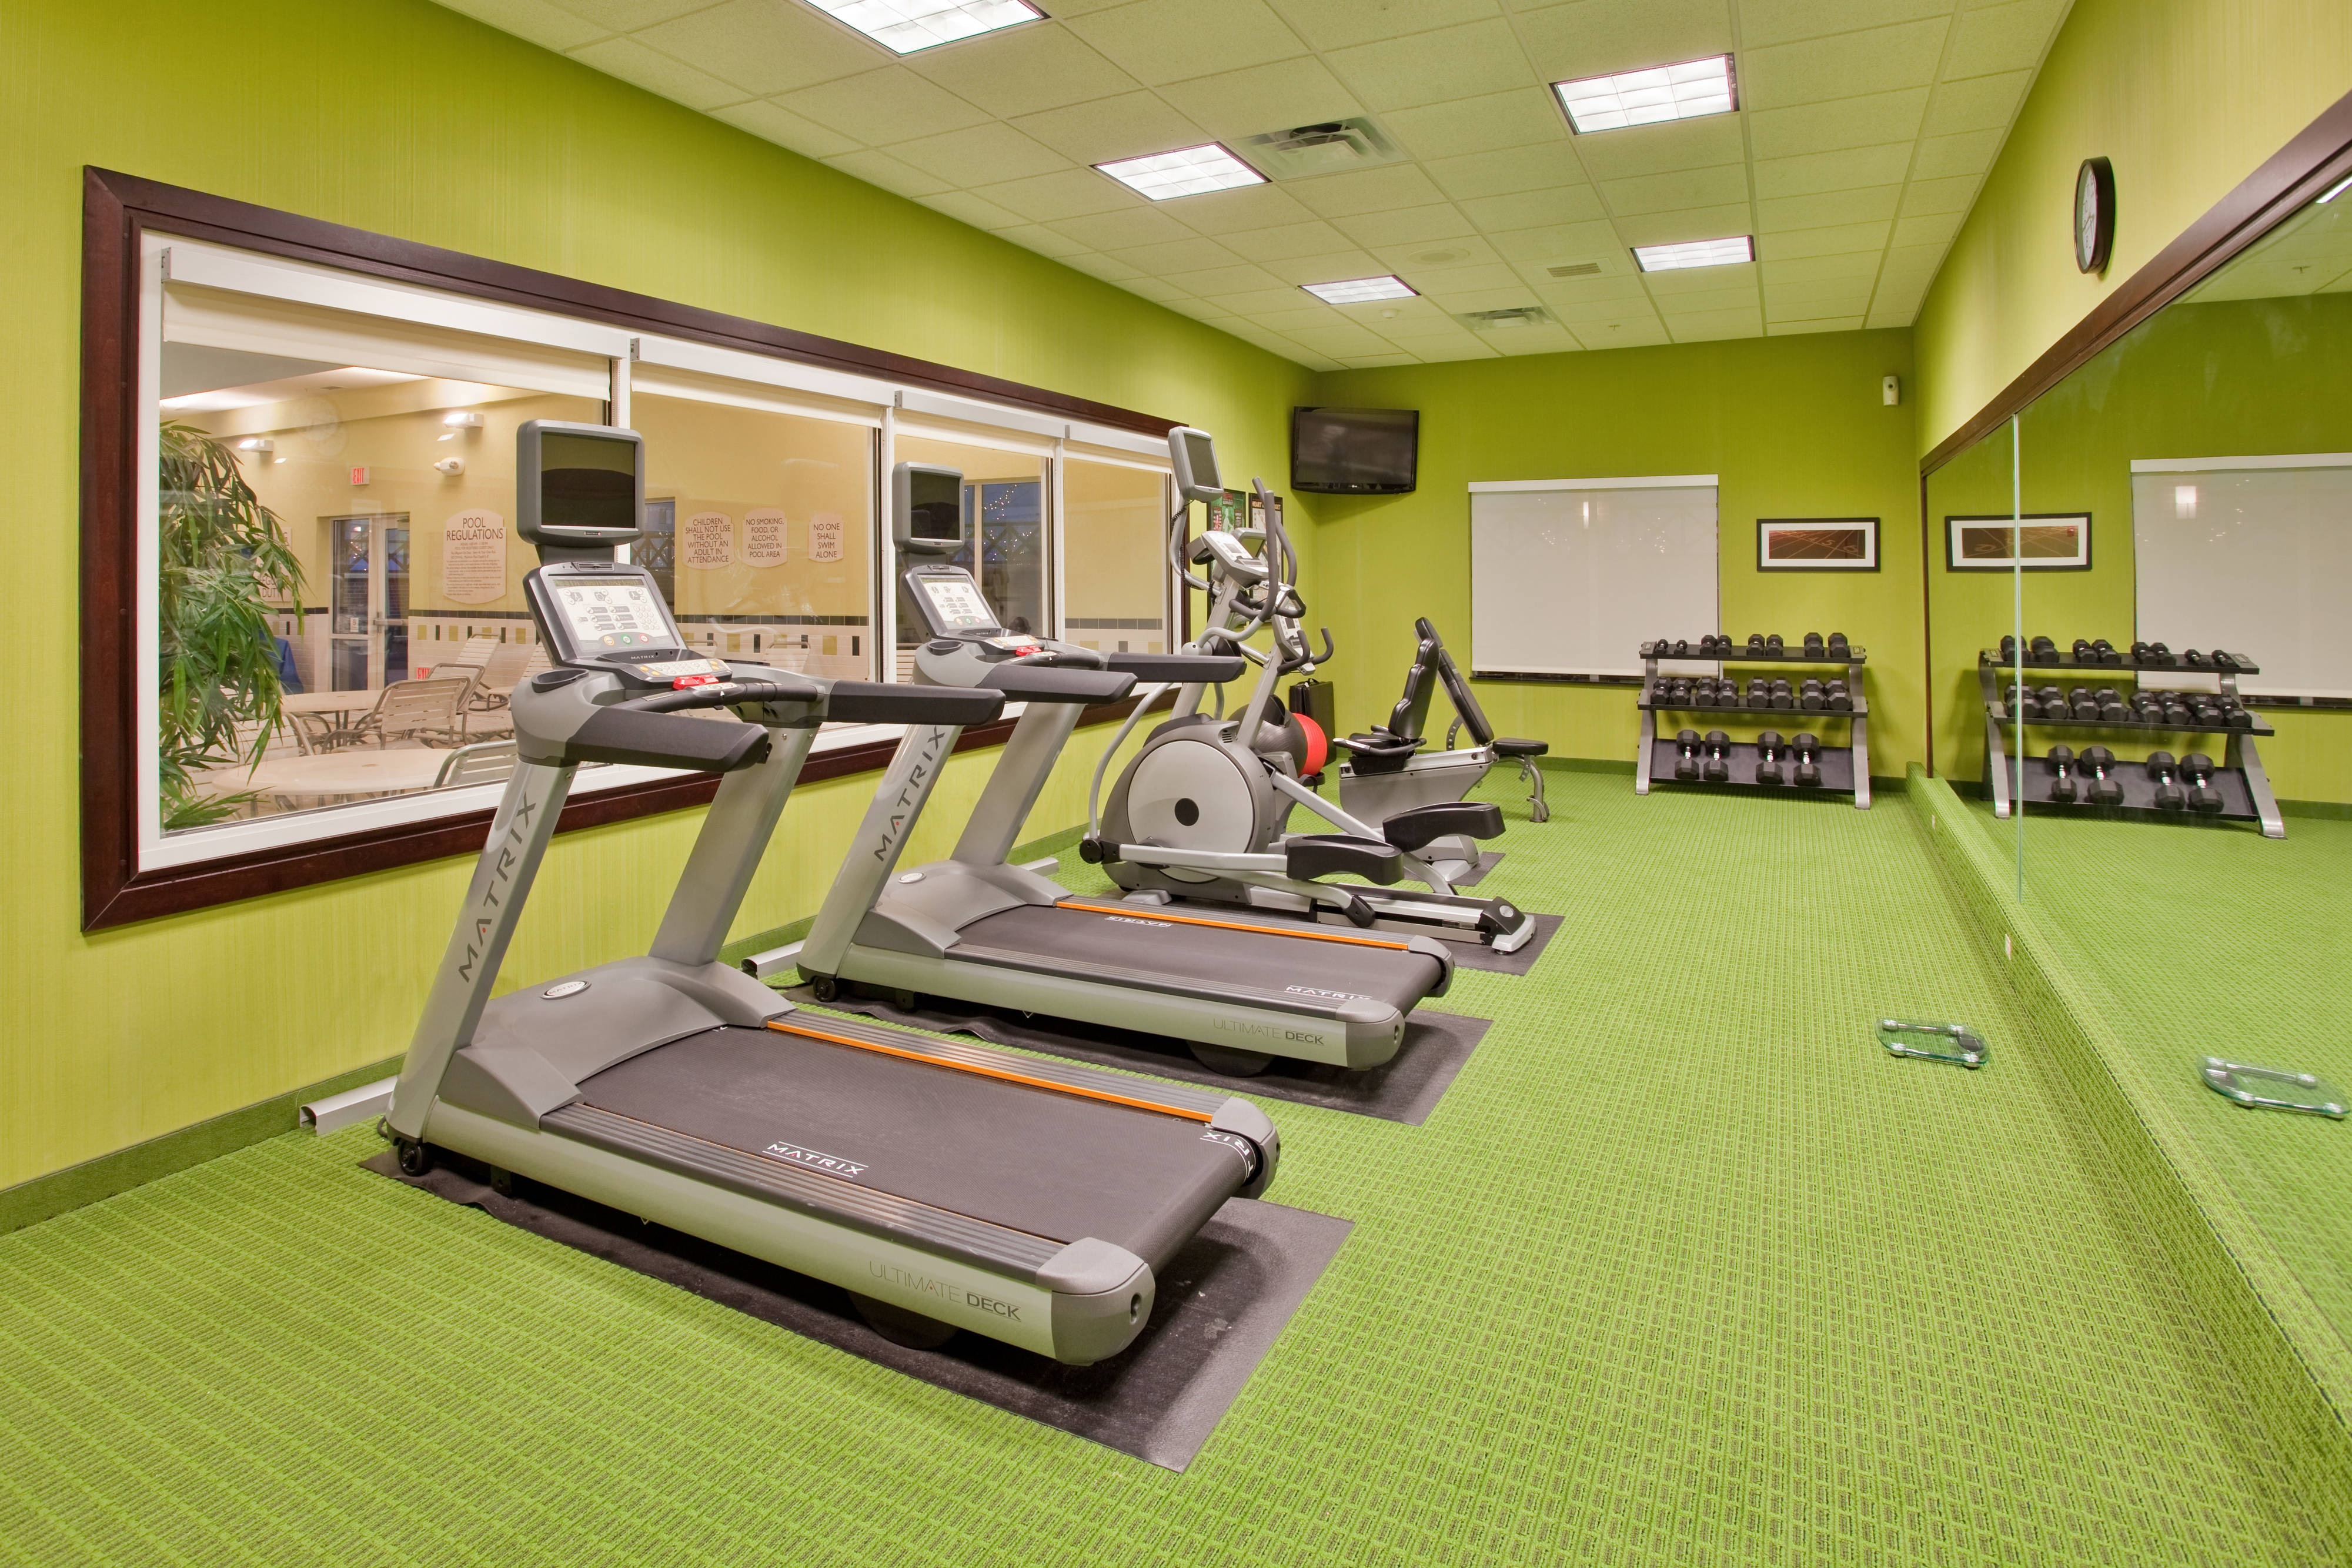 Fairfield Inn & Suites Kearney Fitness Center